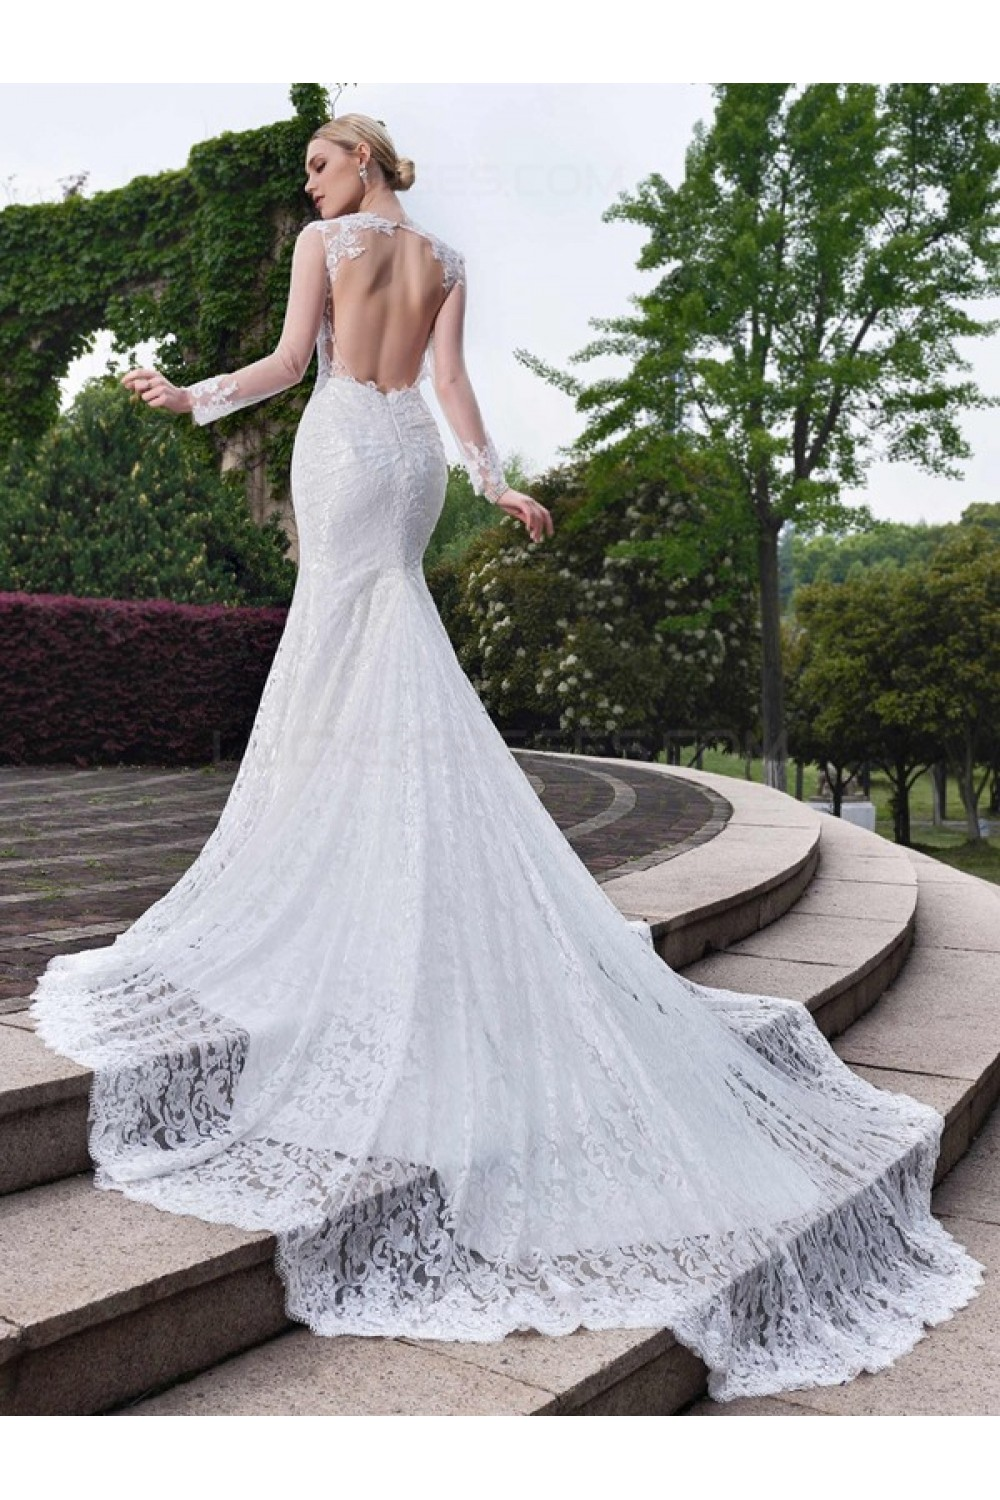 Long Sleeves Lace Open Back Mermaid Wedding Dresses Bridal Gowns 3030162,Dresses For Wedding Mother Of Groom